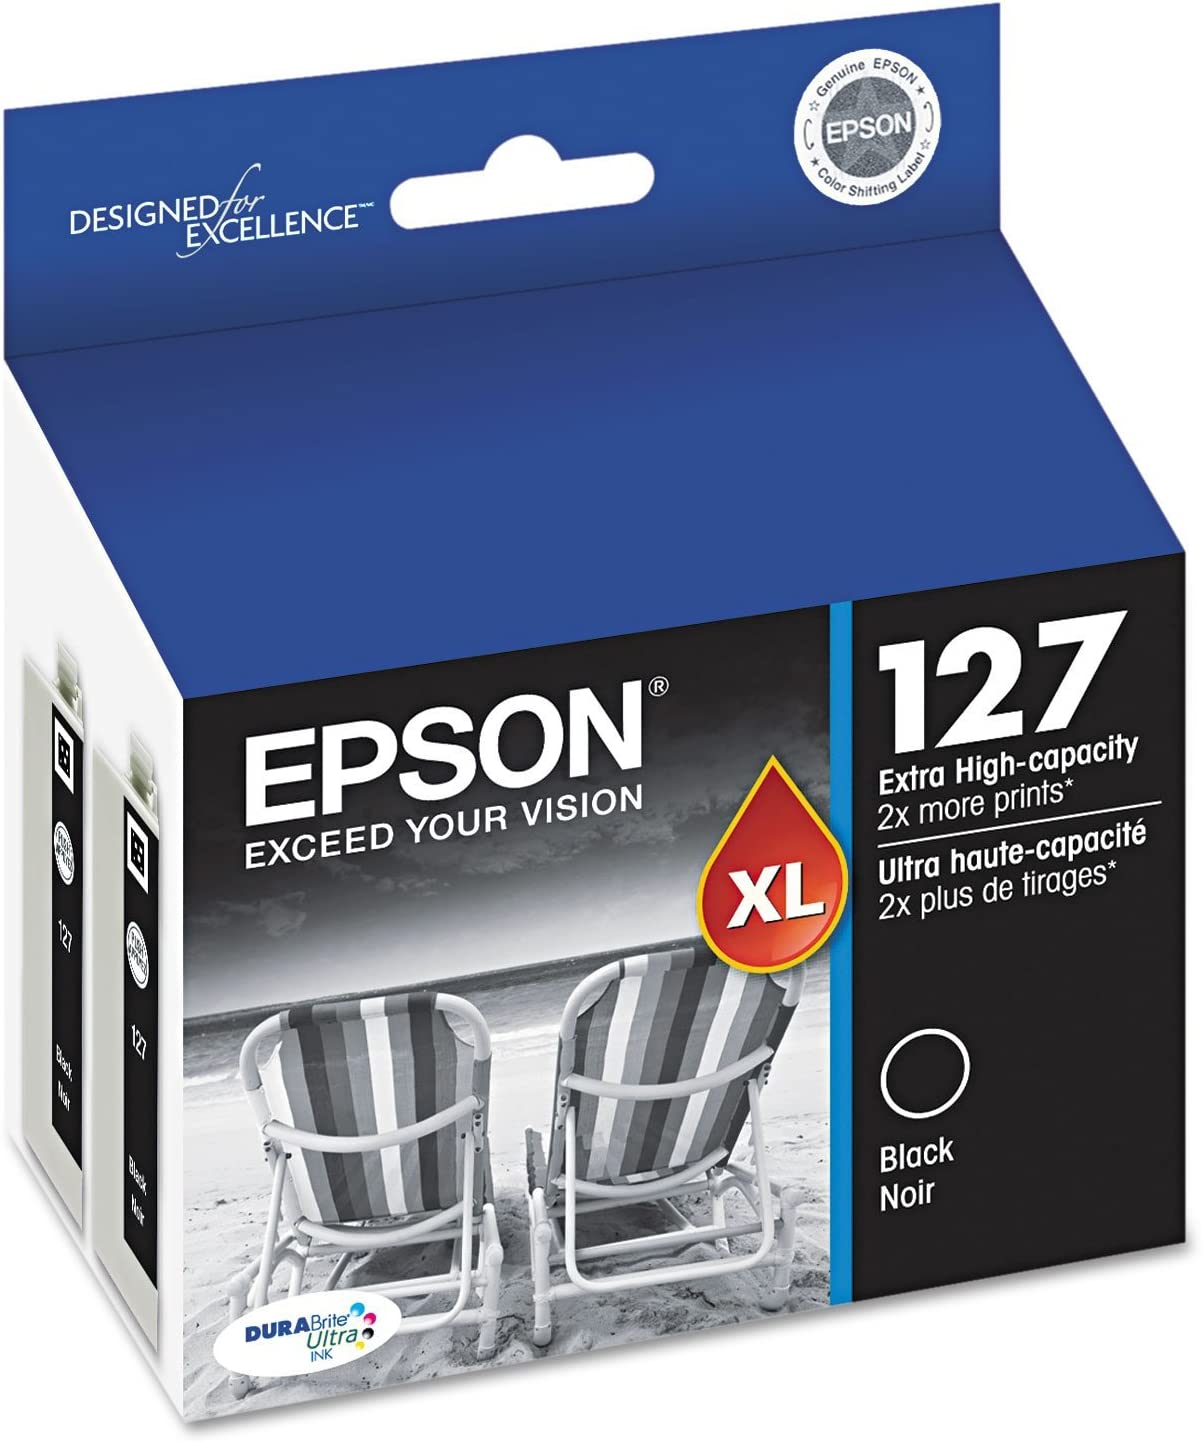 Epson DuraBrite 127xl Extra Yield Combo Pack, Black (2 ink cartridges in this box)